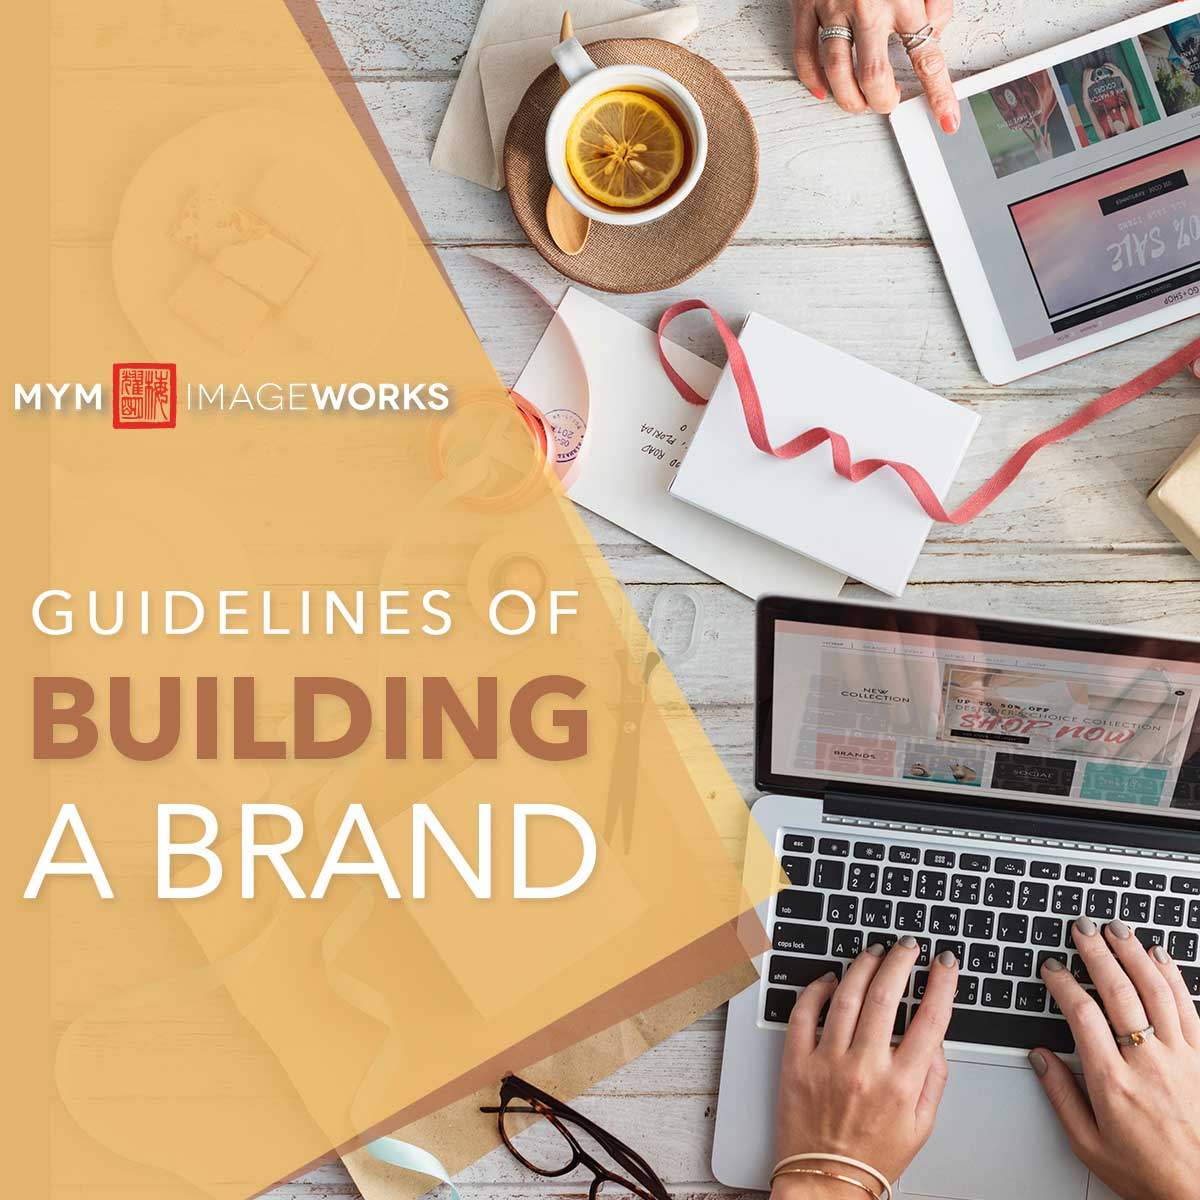 Guidelines of Building A Brand